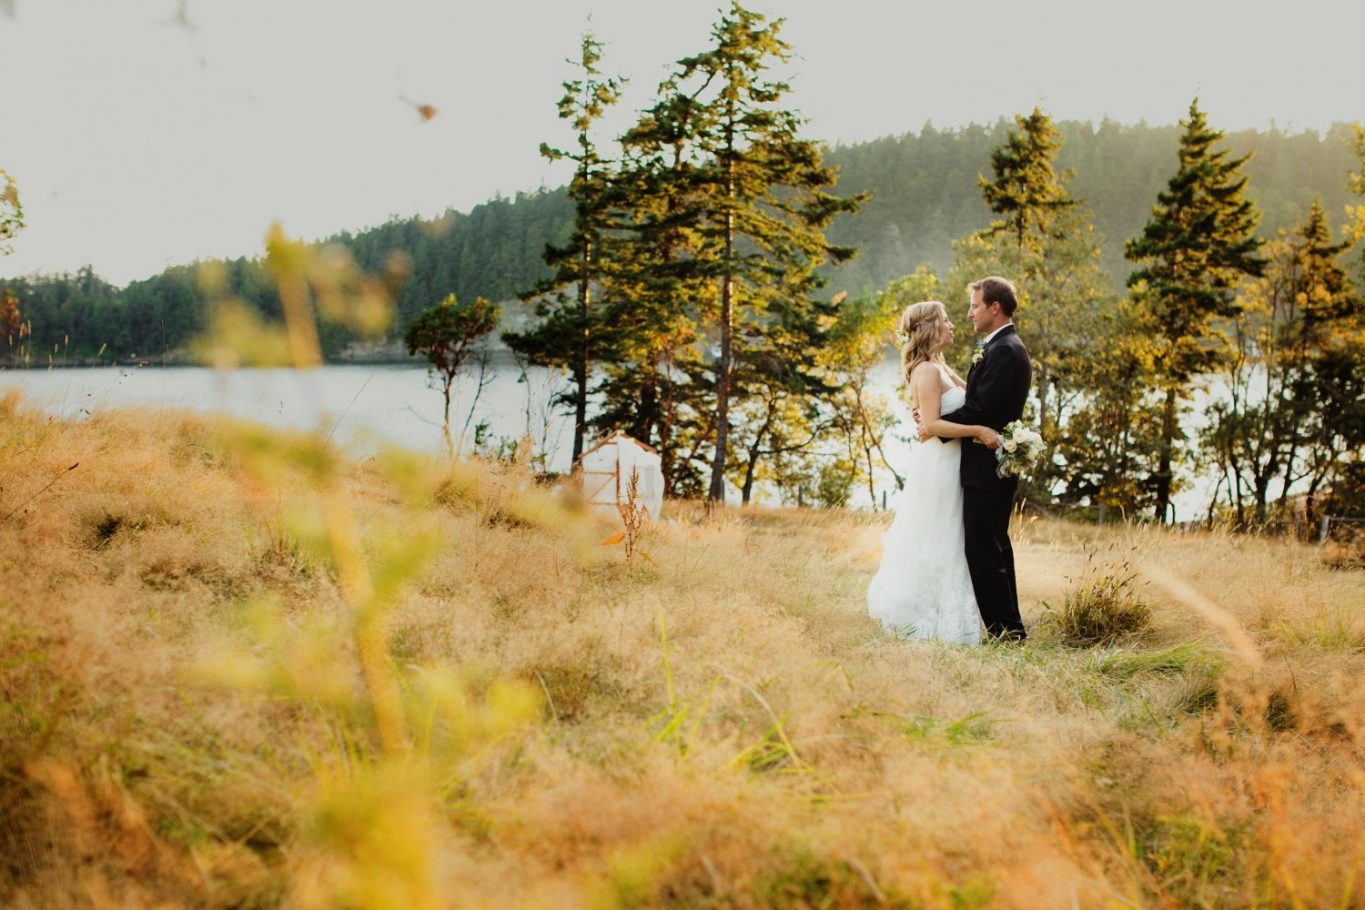 woodstock-farm-wedding-sunset-picture-bellingham-bride-groom-couple